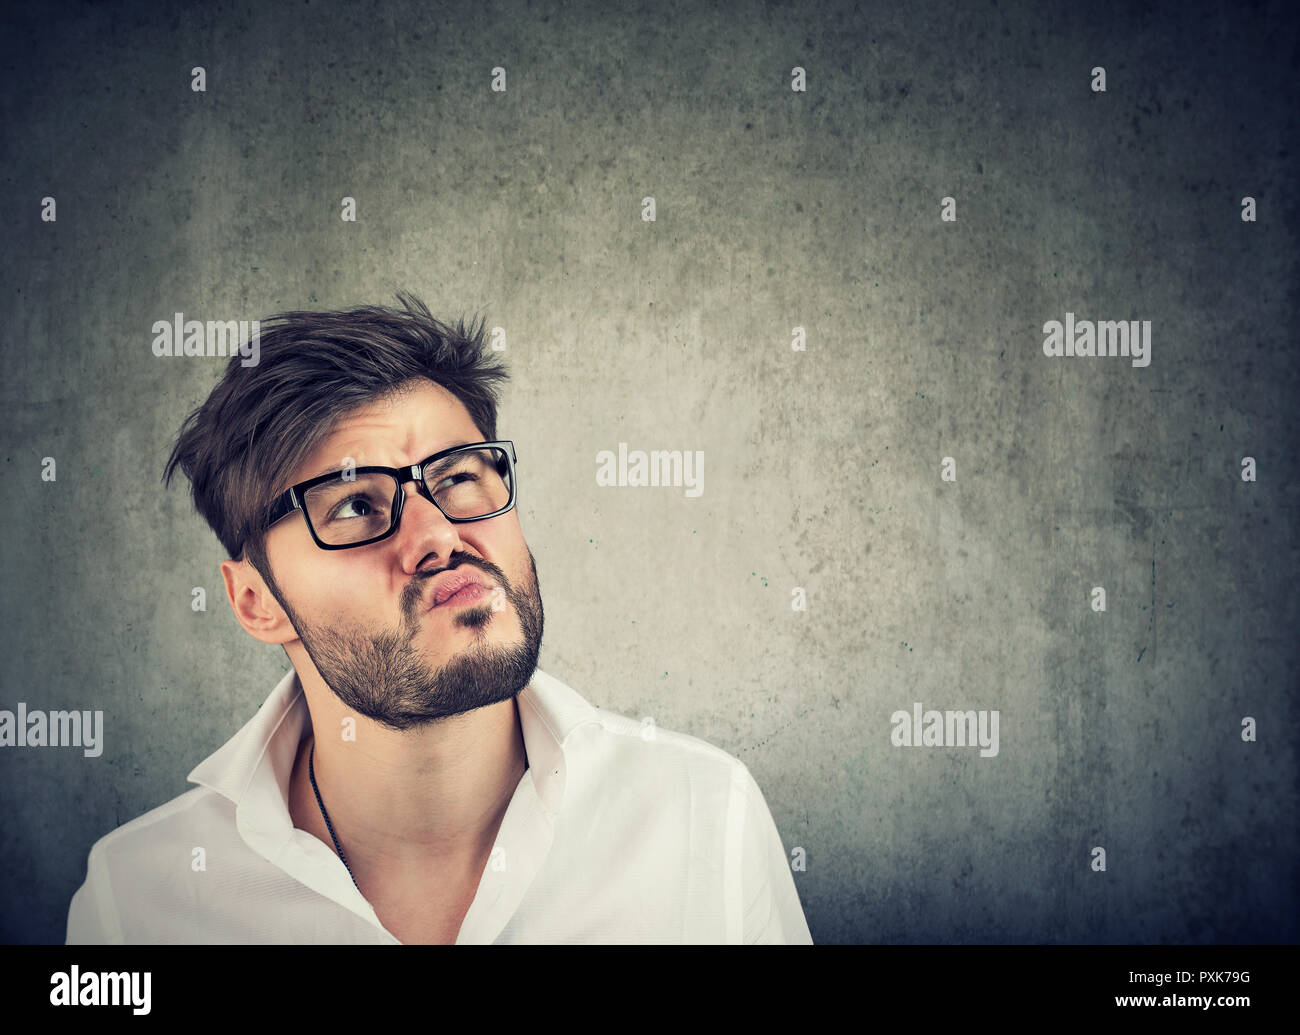 Adult bearded man in glasses and white shirt looking up in thoughts being uncertain on gray background - Stock Image